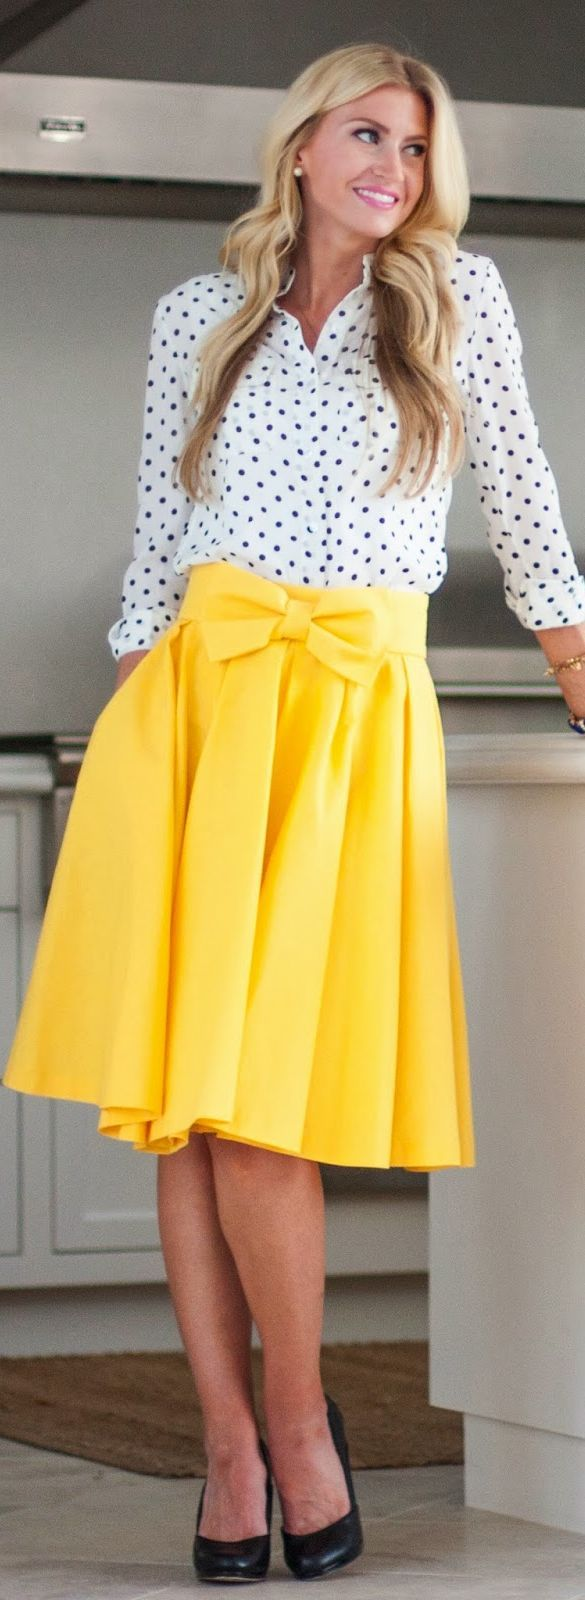 Take A Bow: Sunny by Elle Apparel